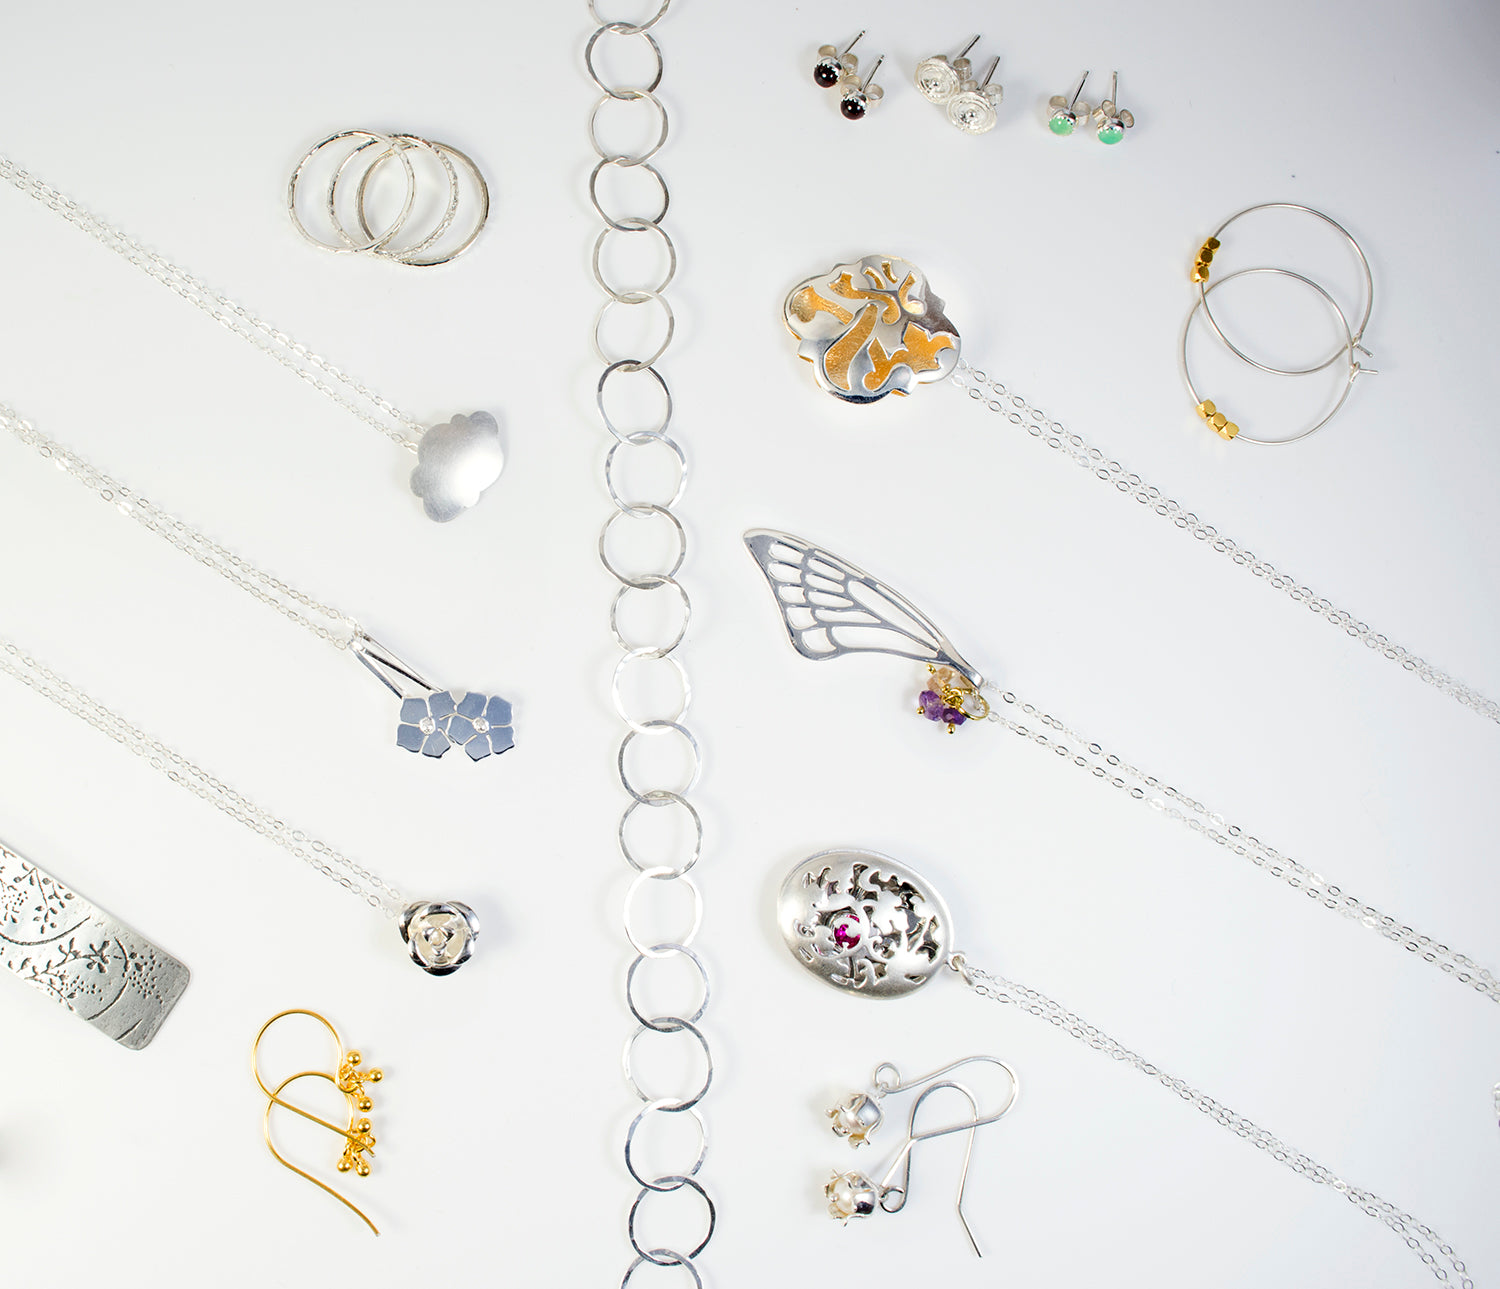 Australian designer jewellery in gold, silver and gemstones.